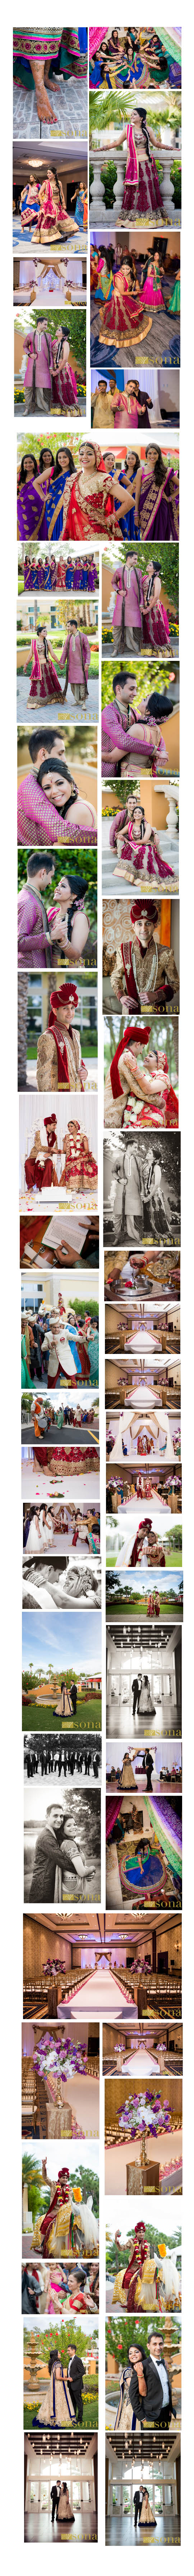 Pooja-Weds-Rupesh-WEDDING-STORY